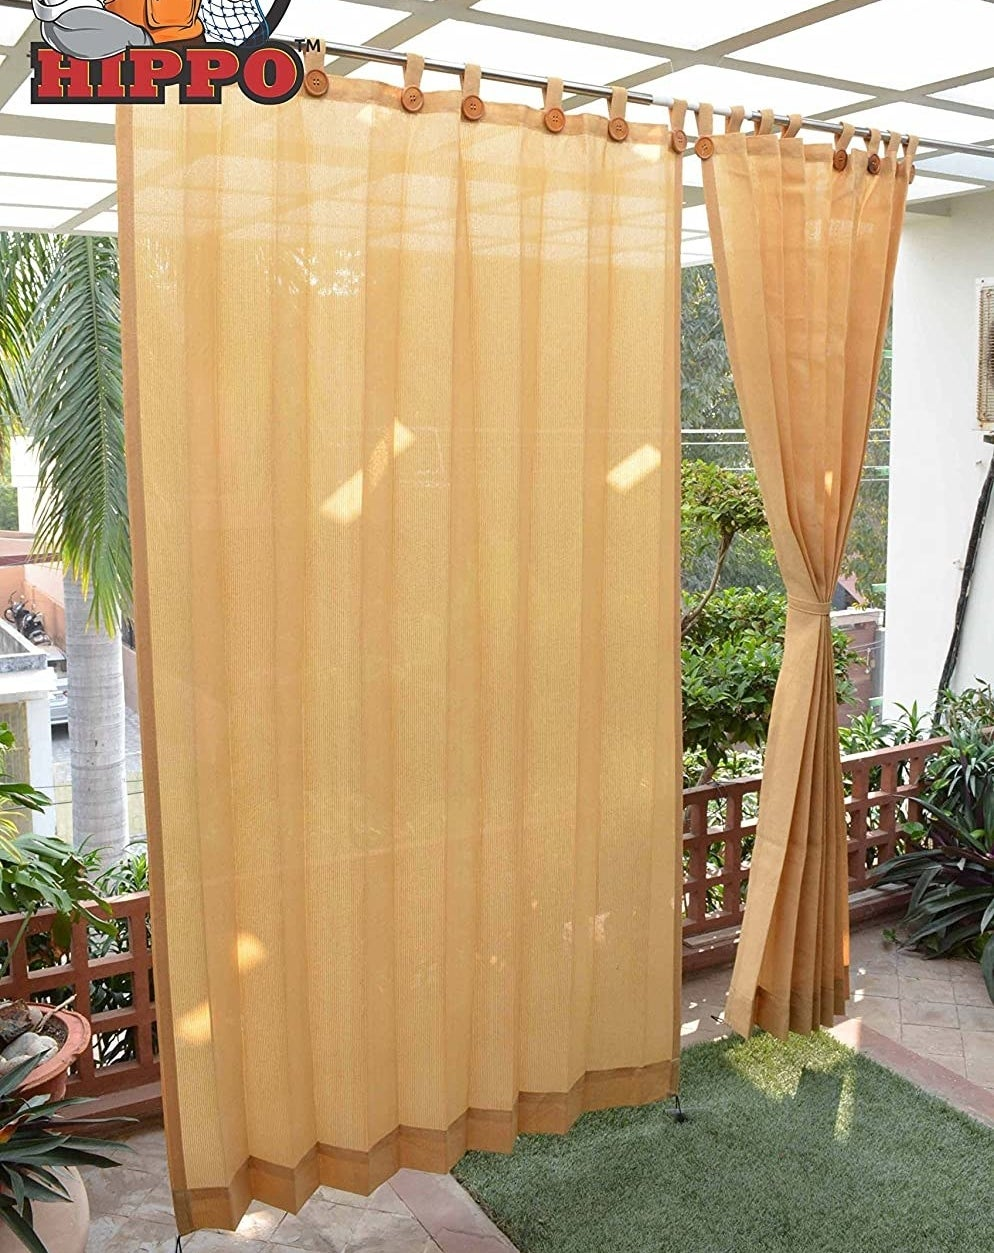 Curtains hung on a balcony providing shade from the sun.